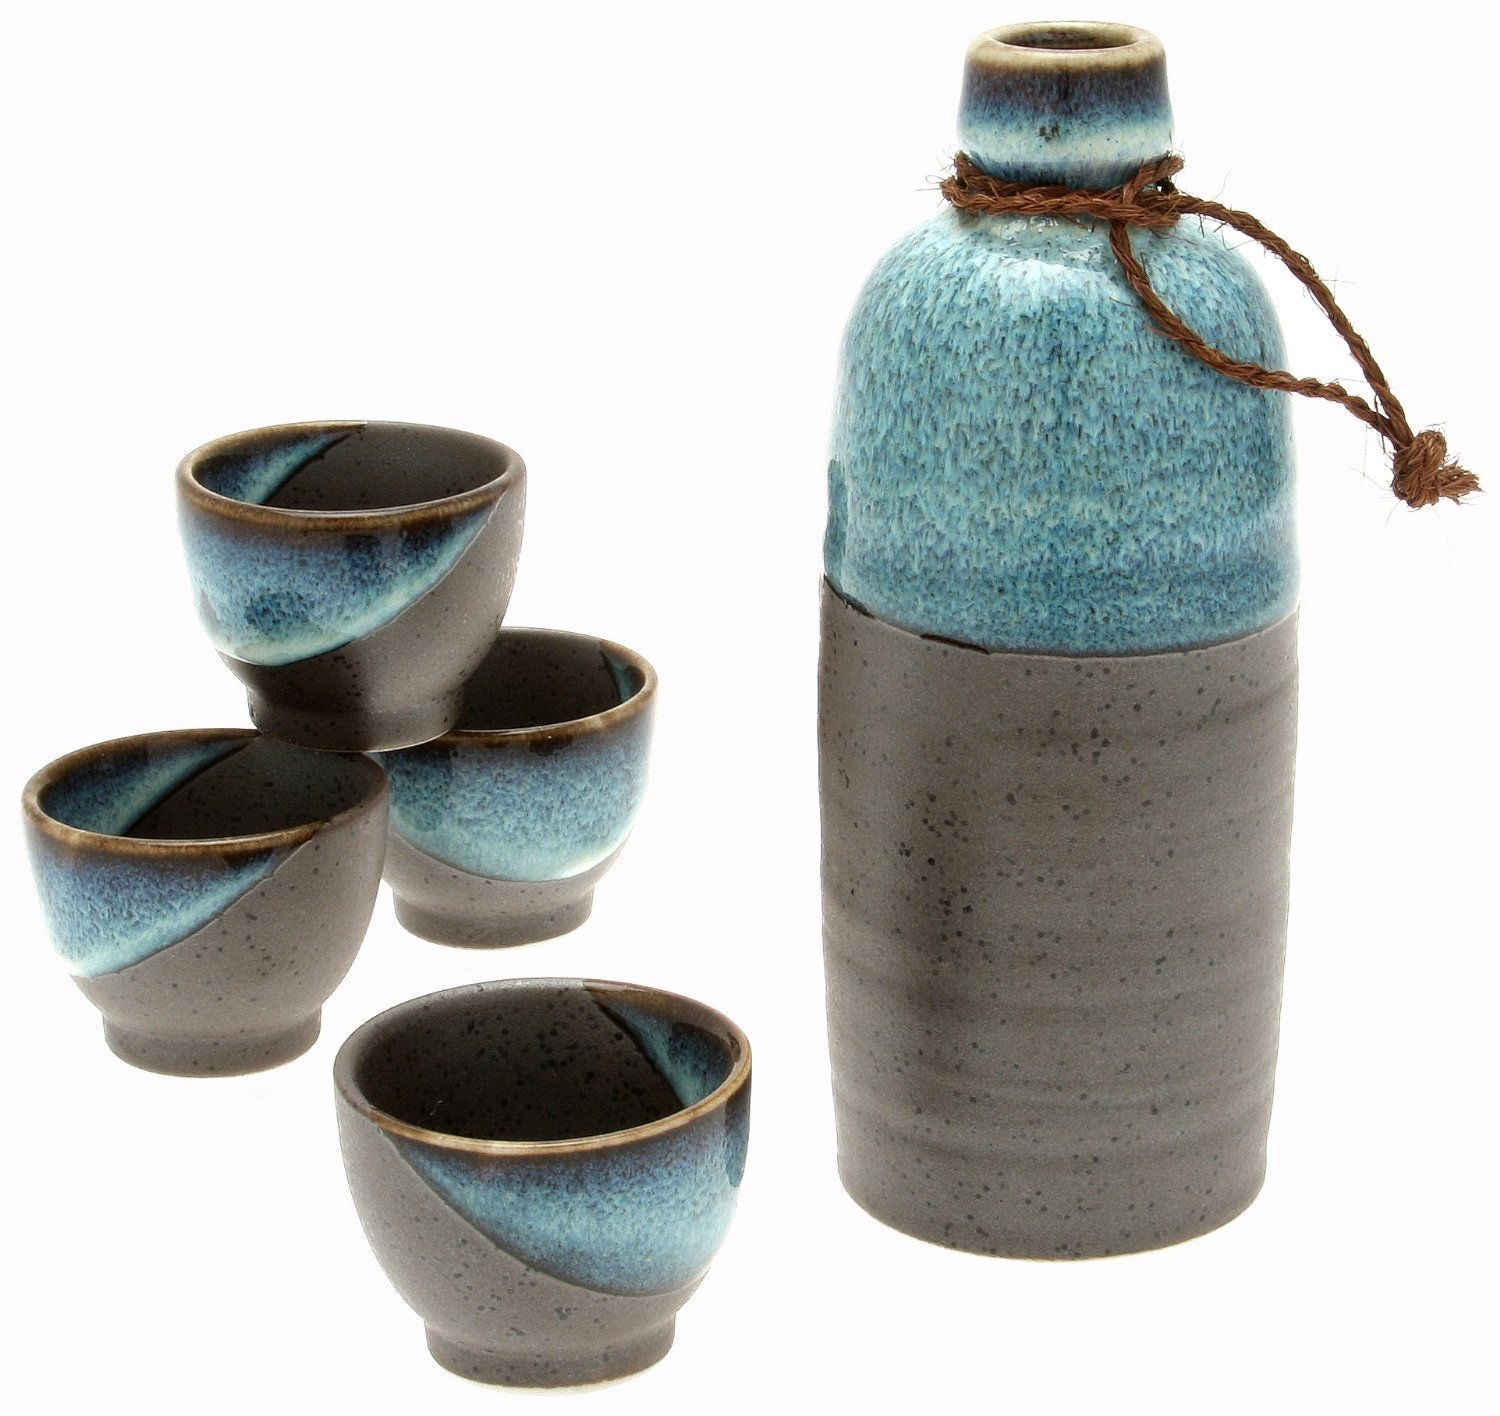 Japanese Calligraphy Sake Set, Glowing Magma